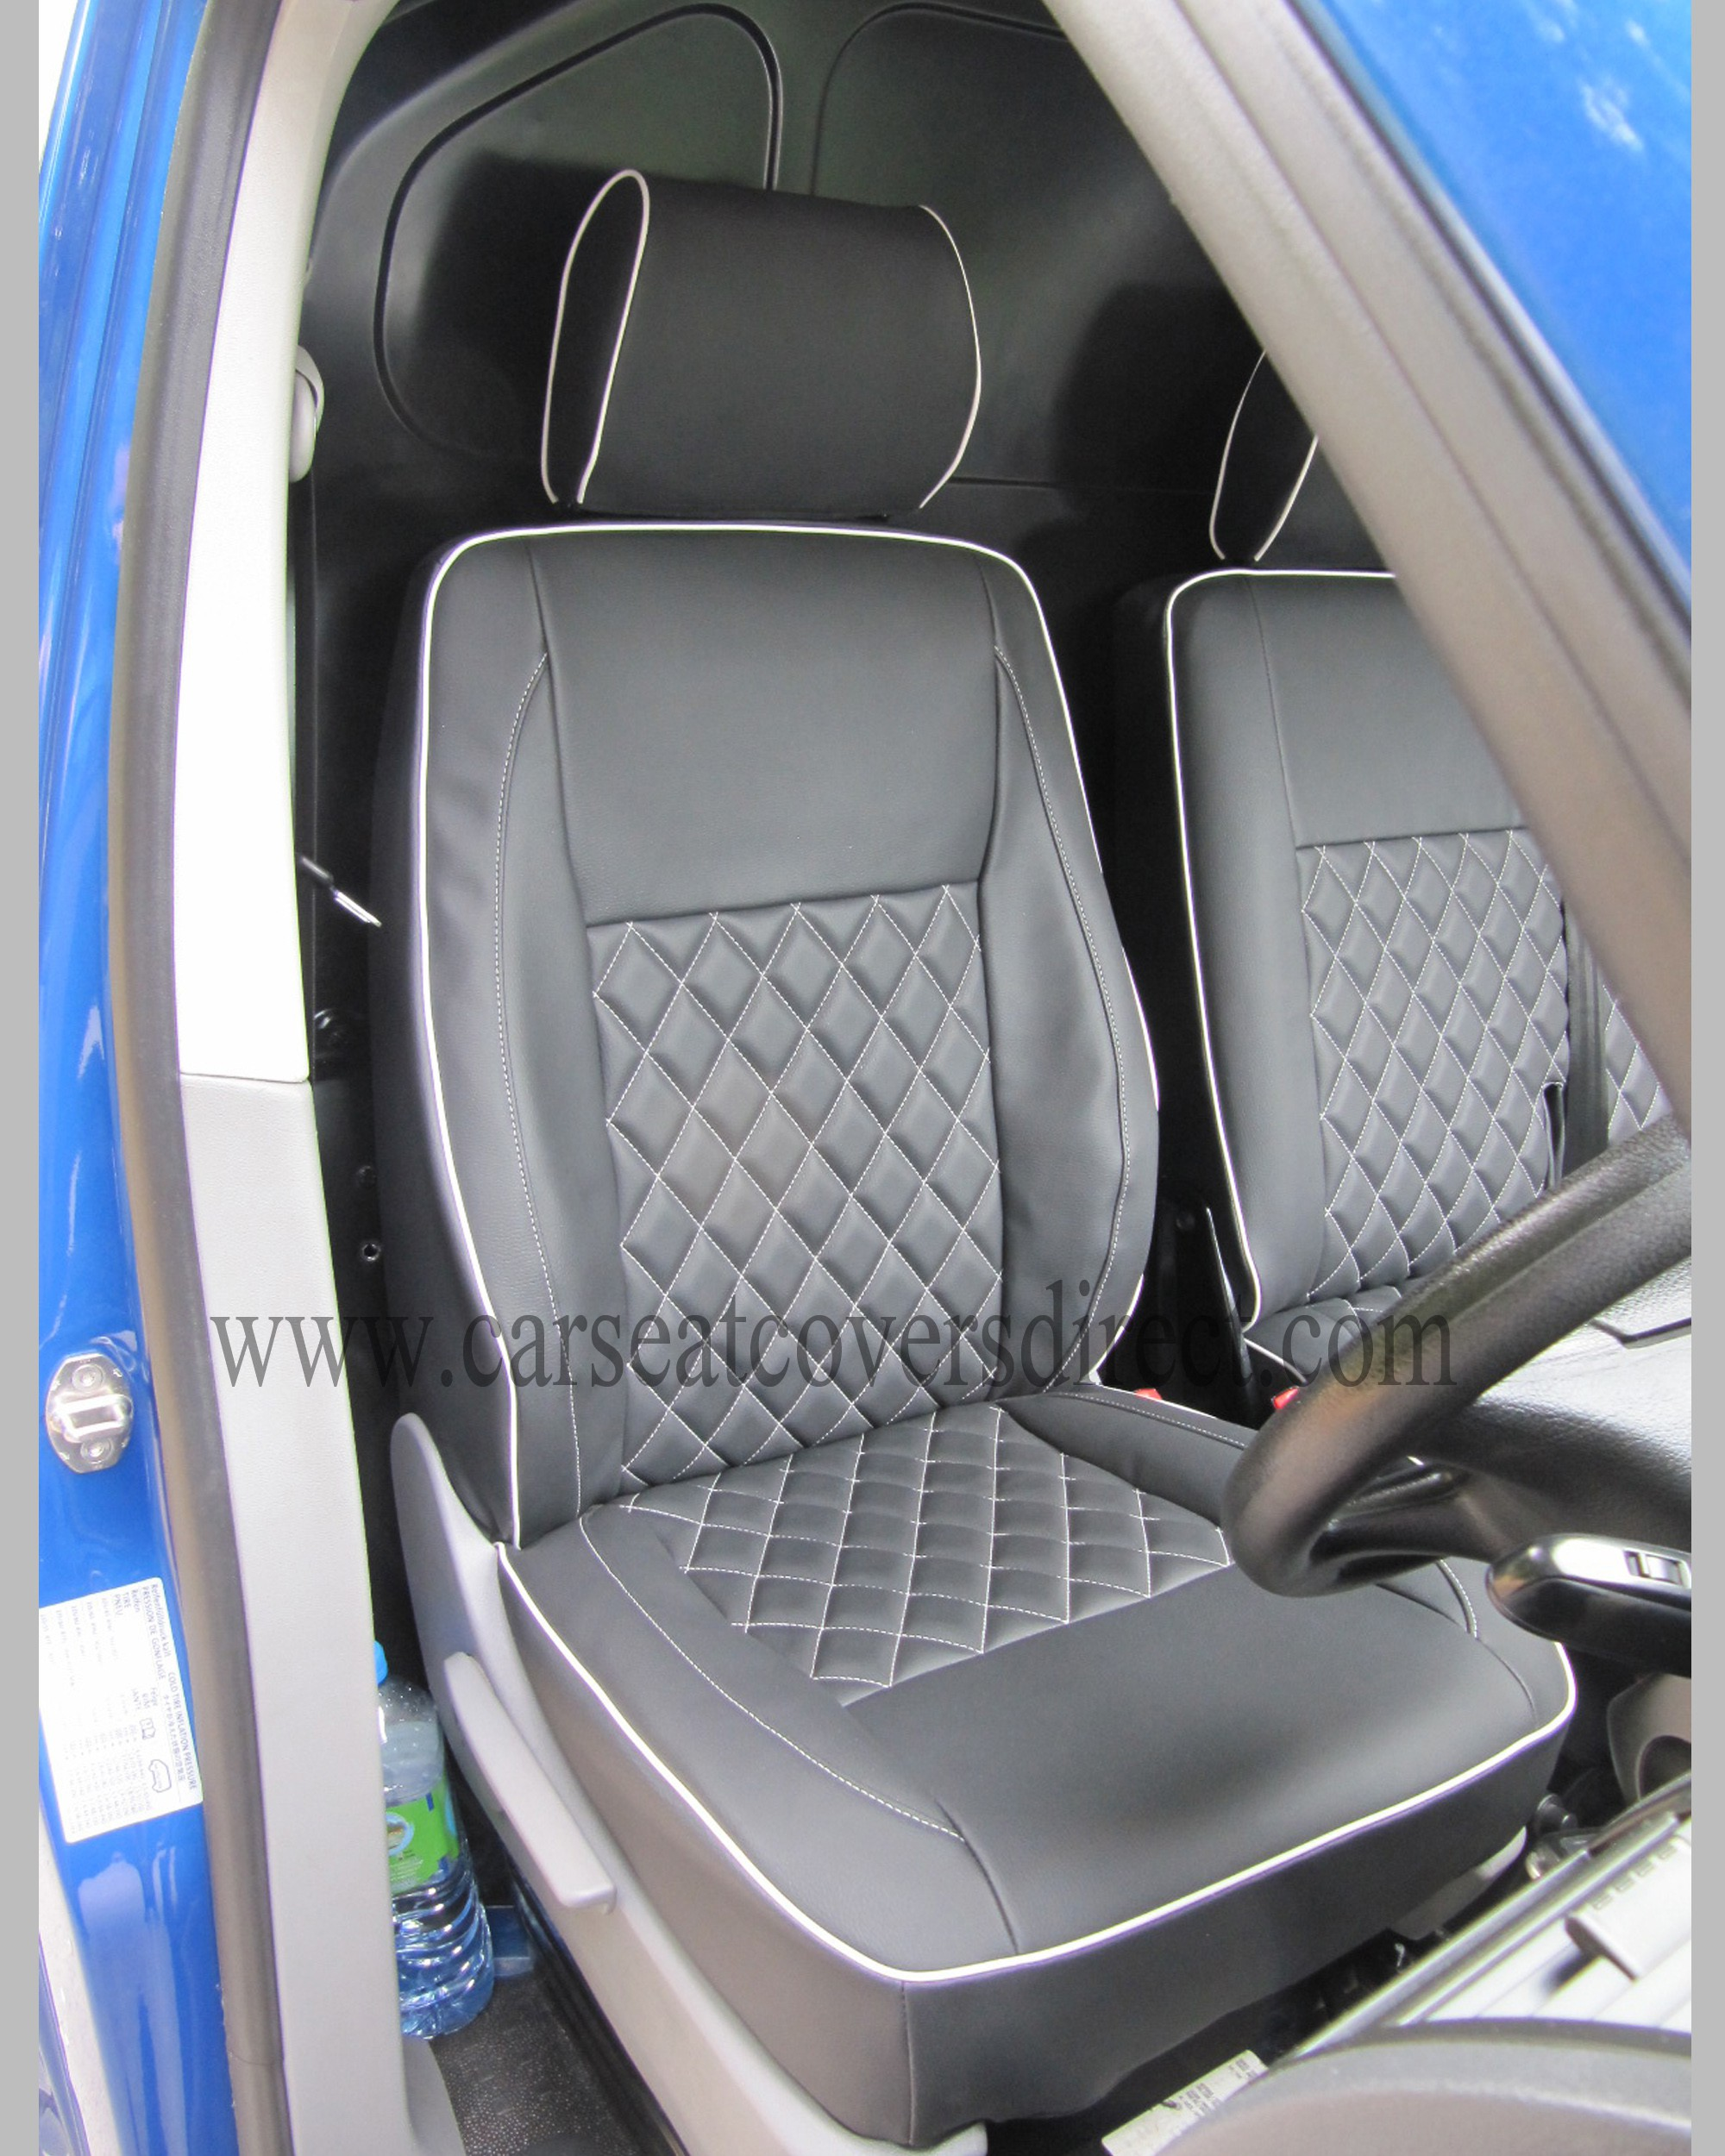 Vw T5 Seat Covers Diamond Stitched Black Amp Grey Car Seat